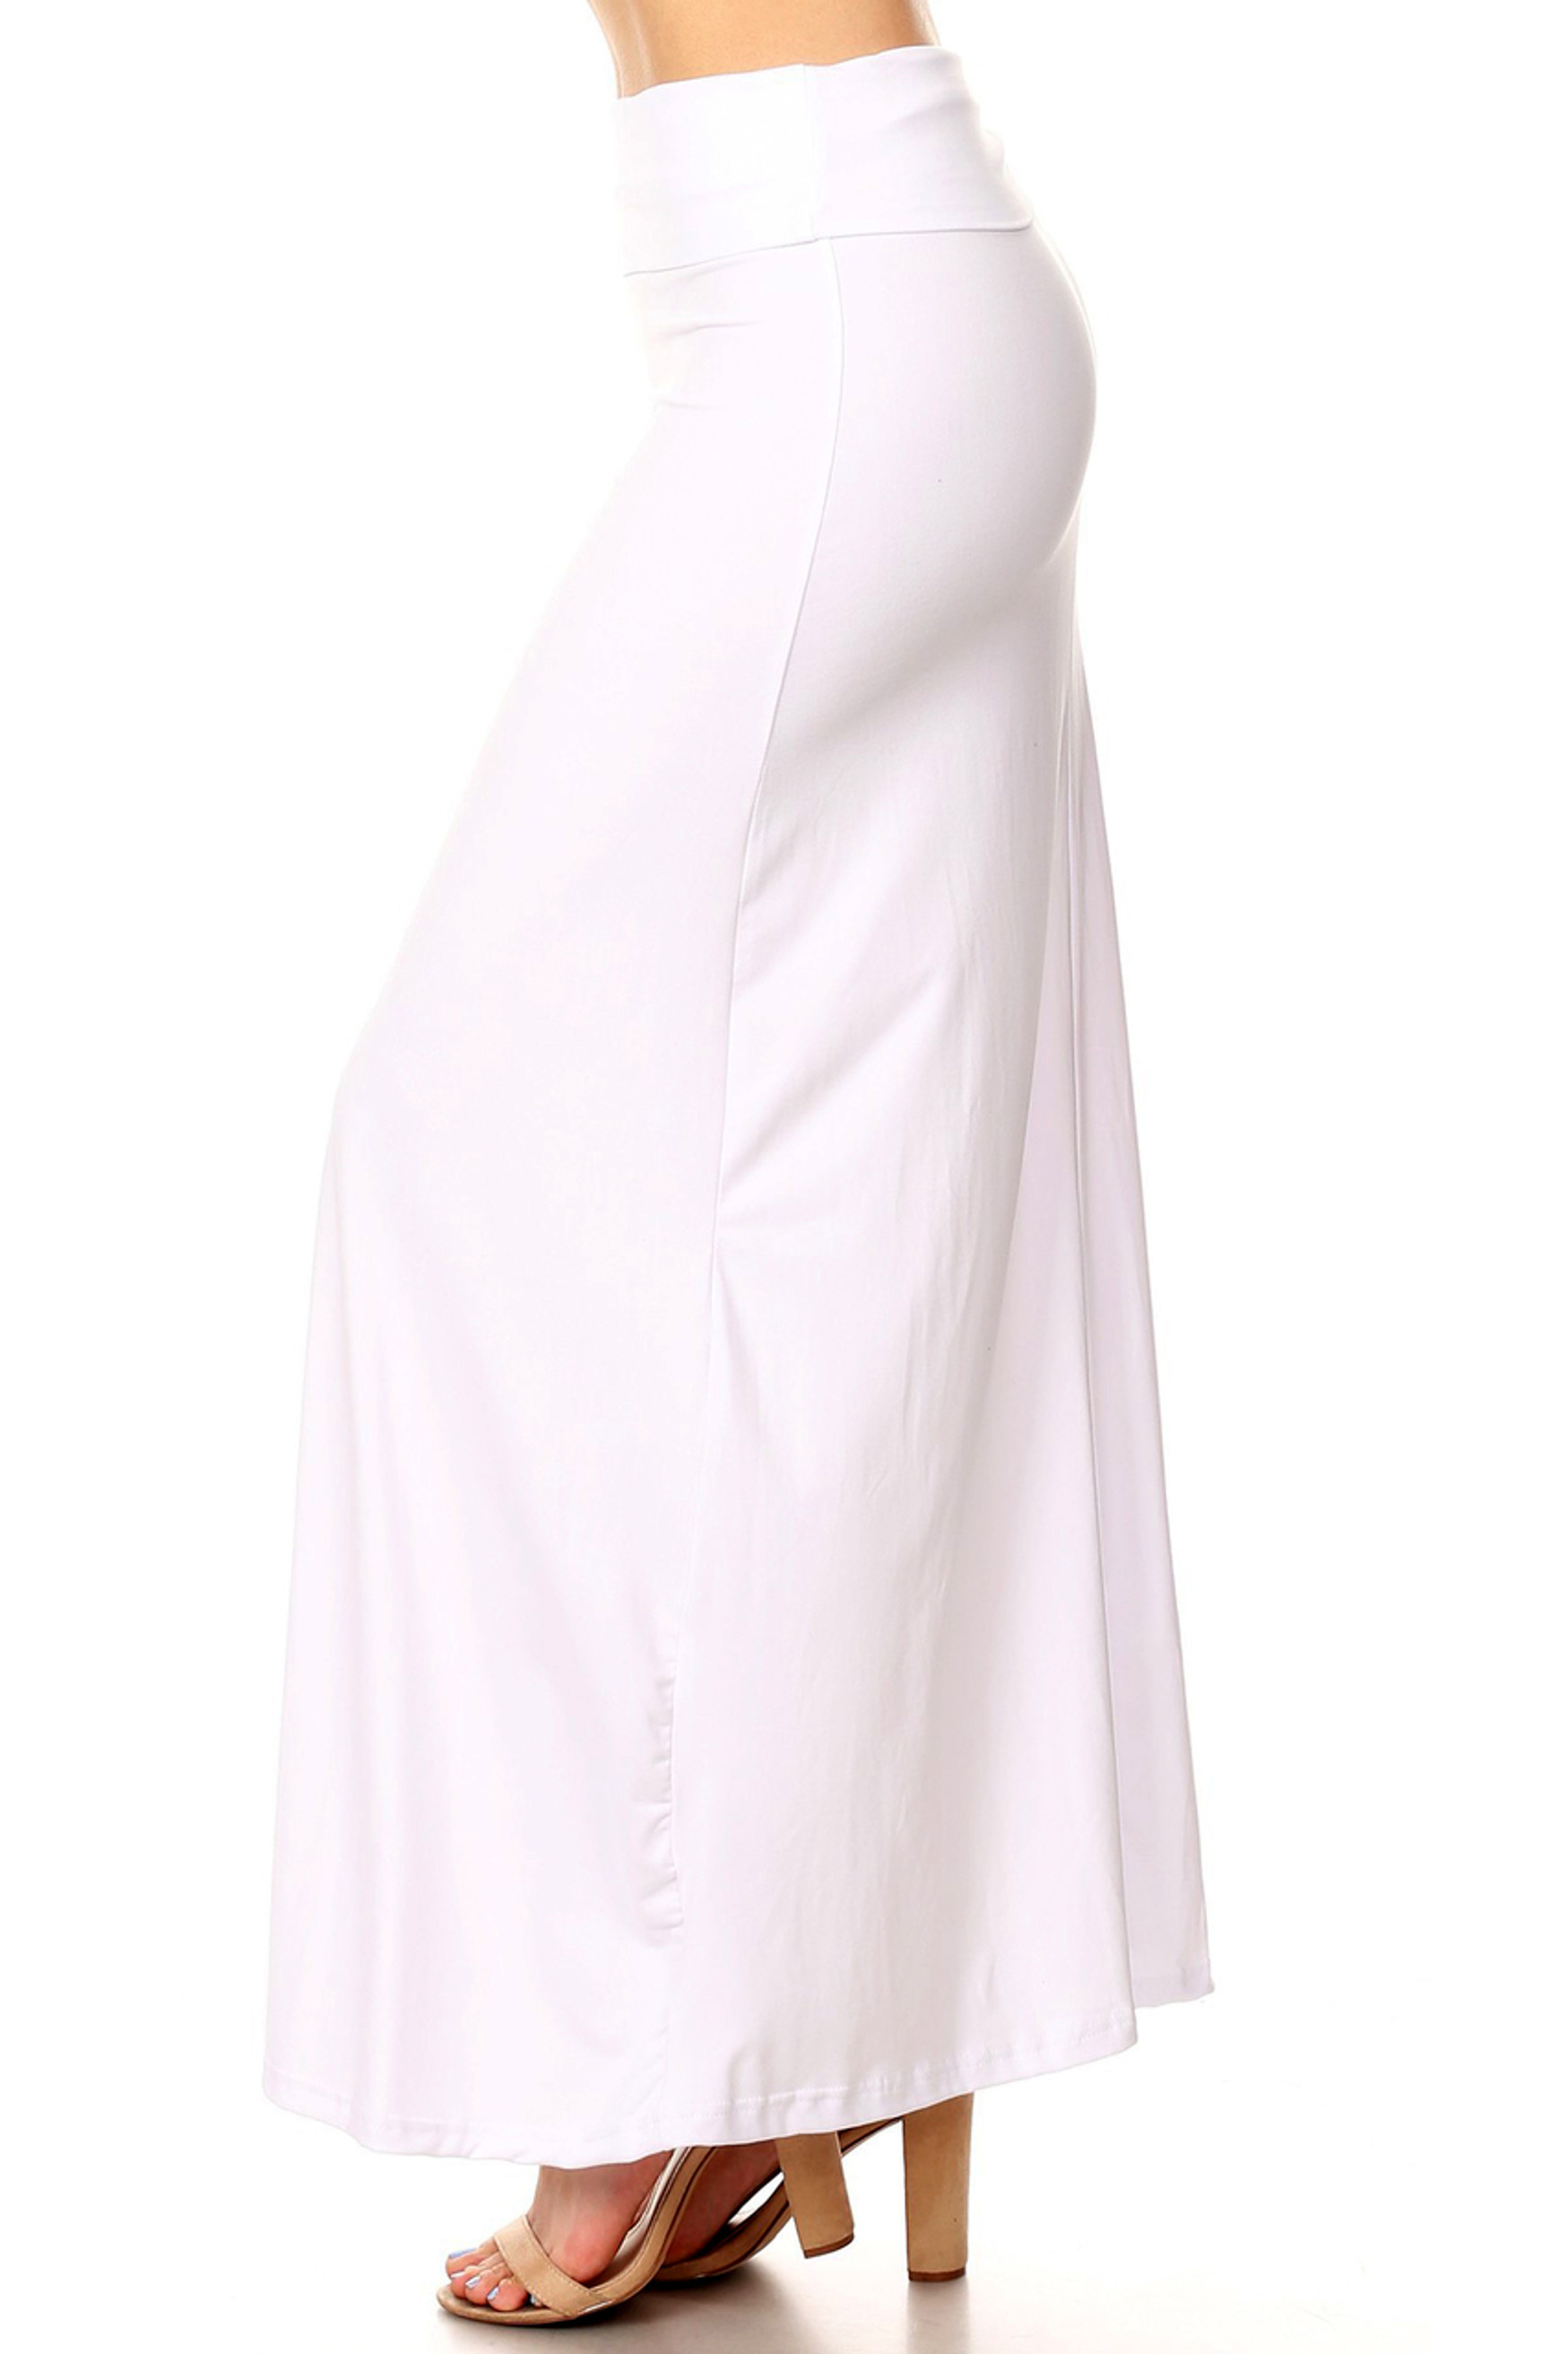 Solid White Buttery Soft Maxi Skirt